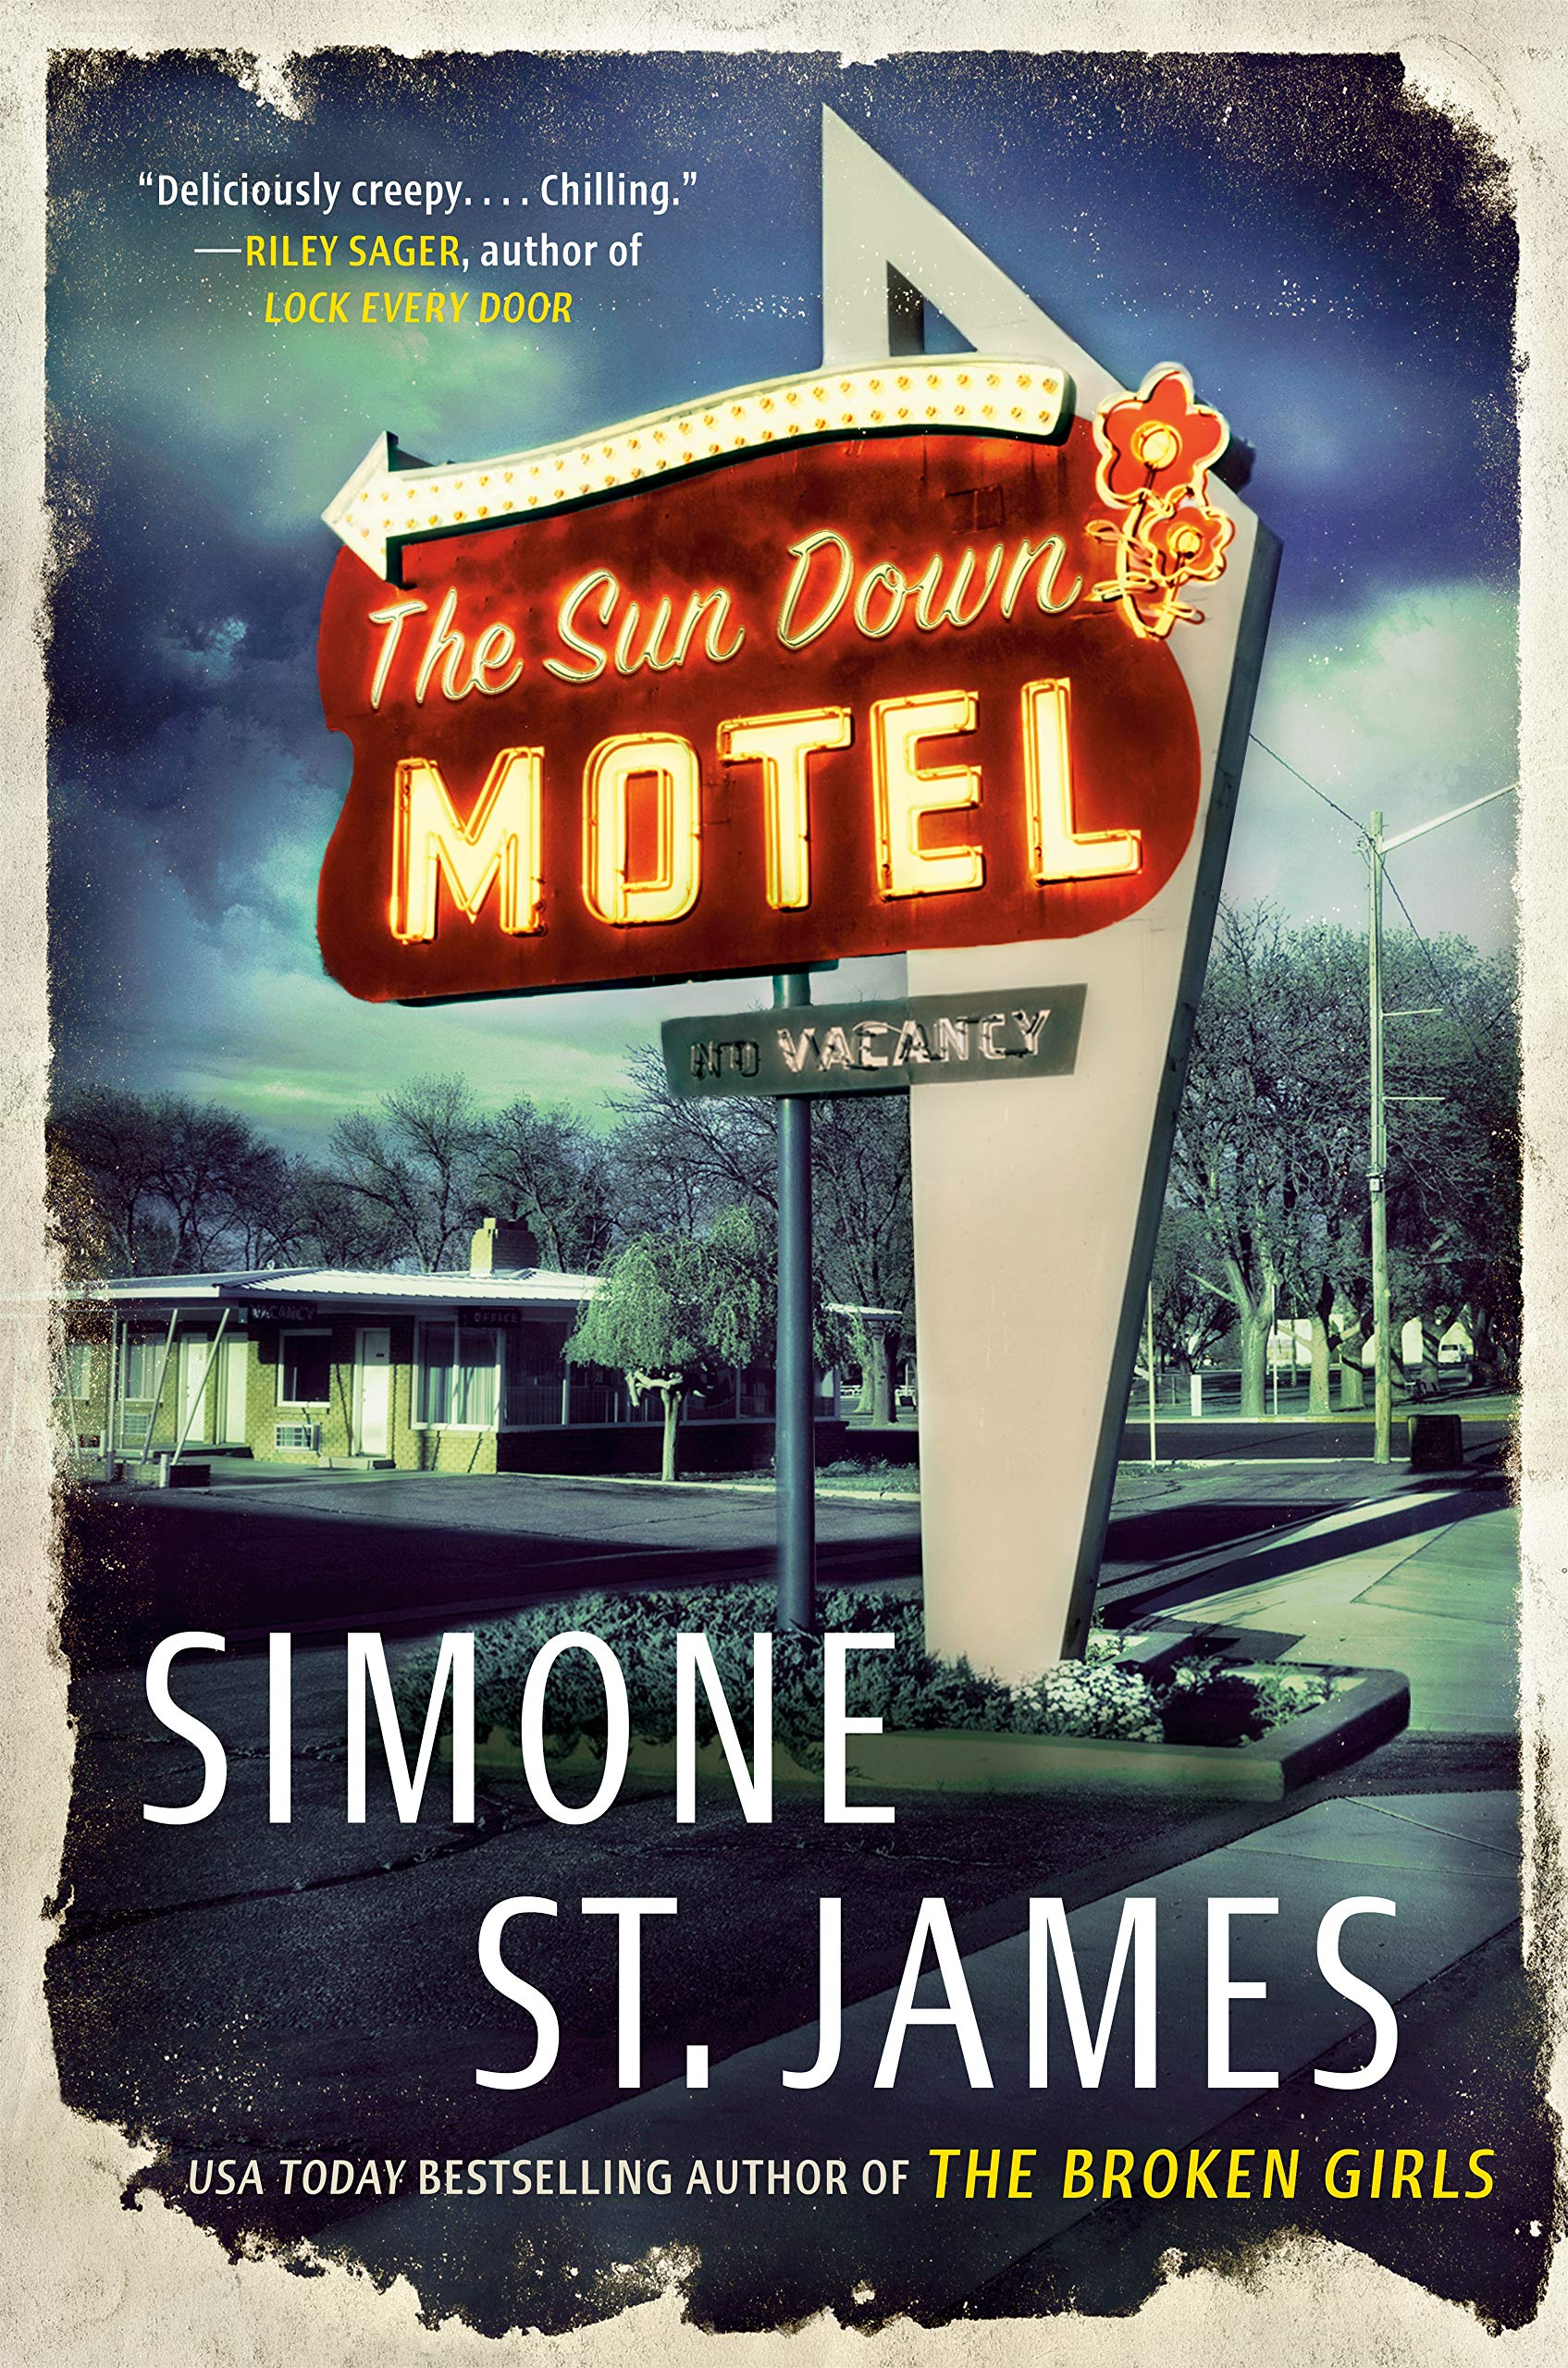 October Book Club Discussion // November Book Club Pick - The Sun Down Motel by Simone St. James Review & Ruth Ware One by One Book Club Review